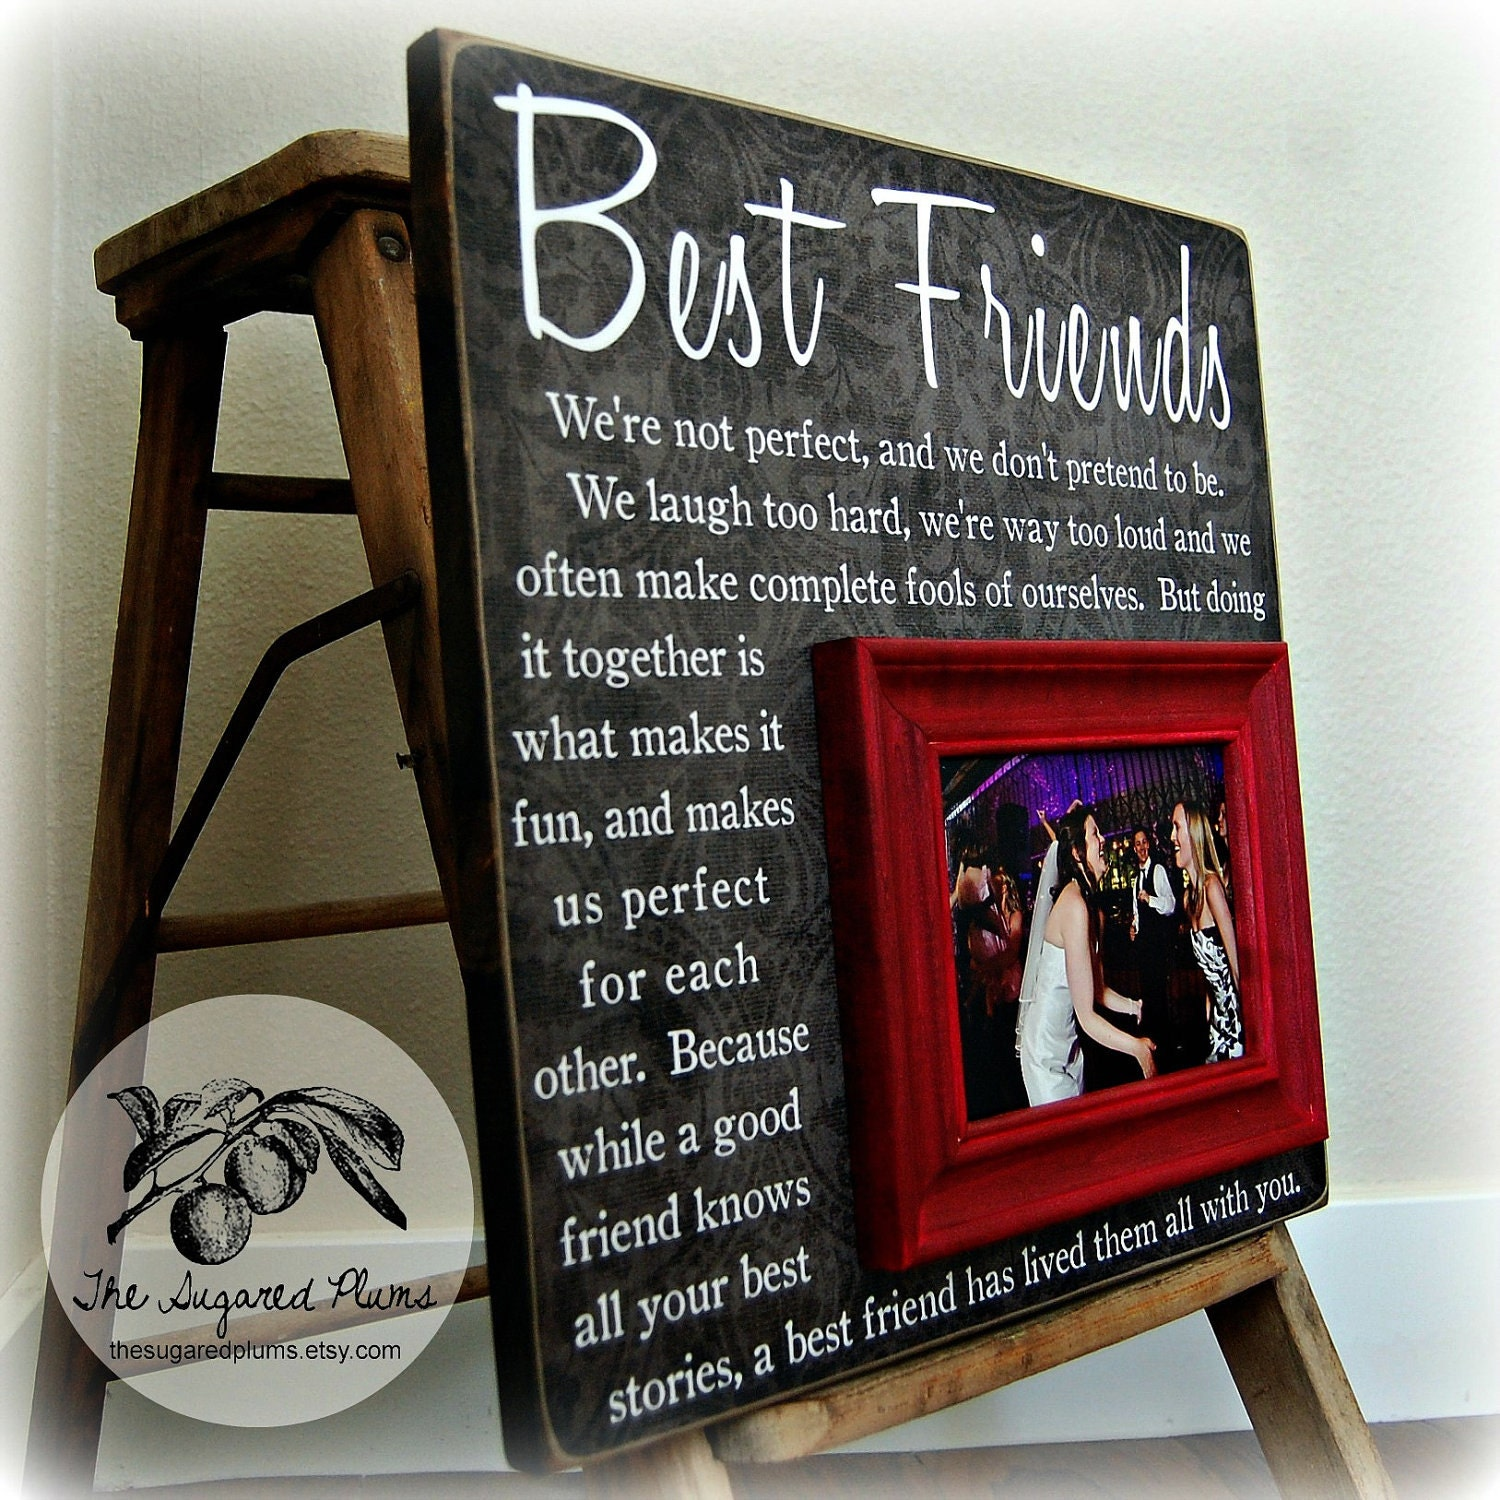 Wedding Personalized Bridesmaid Gifts best friend gift sister bridesmaid girlfriends